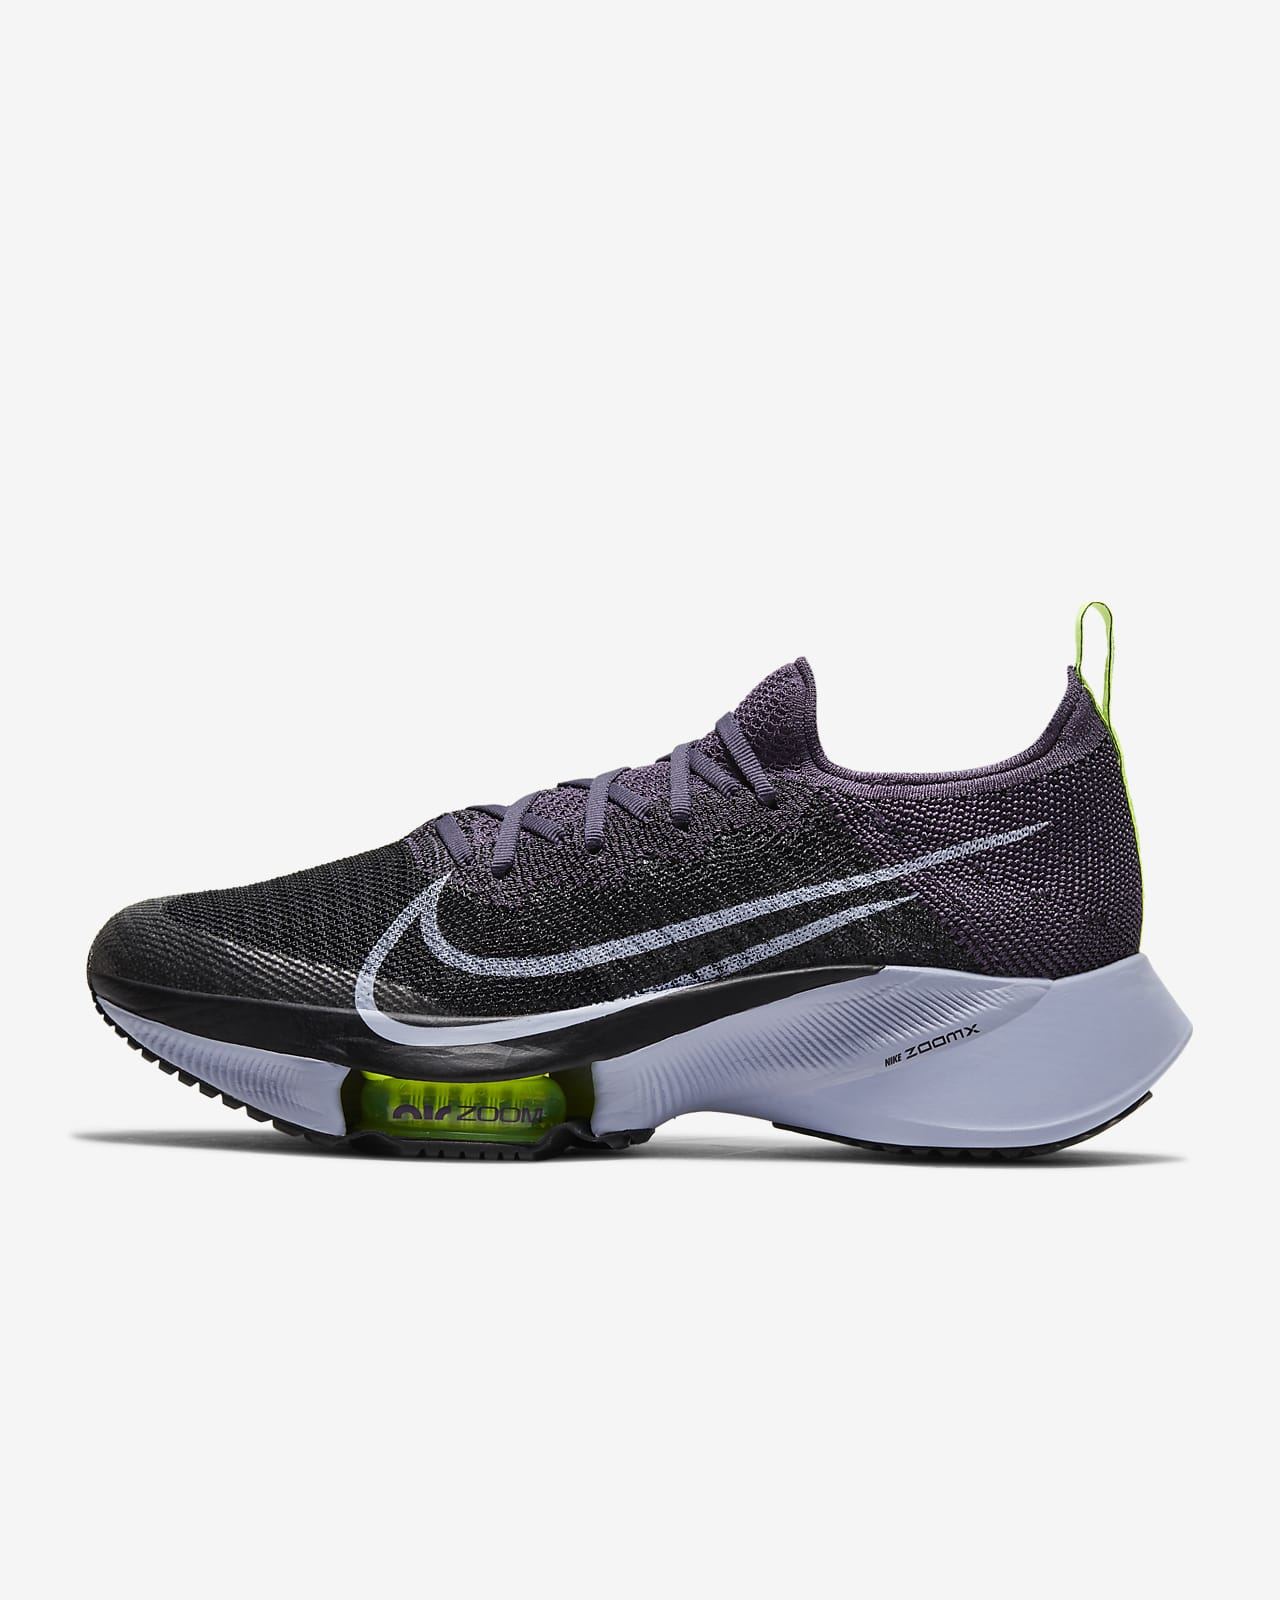 Chaussure de running Nike Air Zoom Tempo NEXT% pour Femme. Nike FR